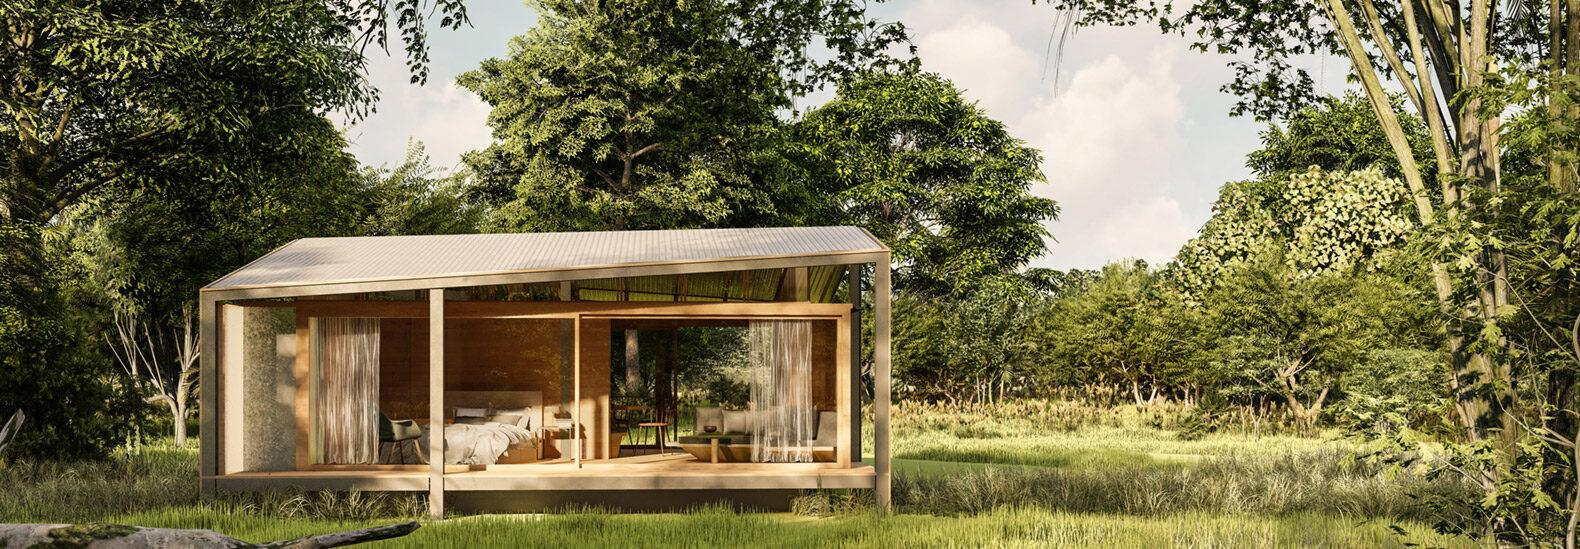 The prefab Tiny Tetra House in Bali is made of recycled waste